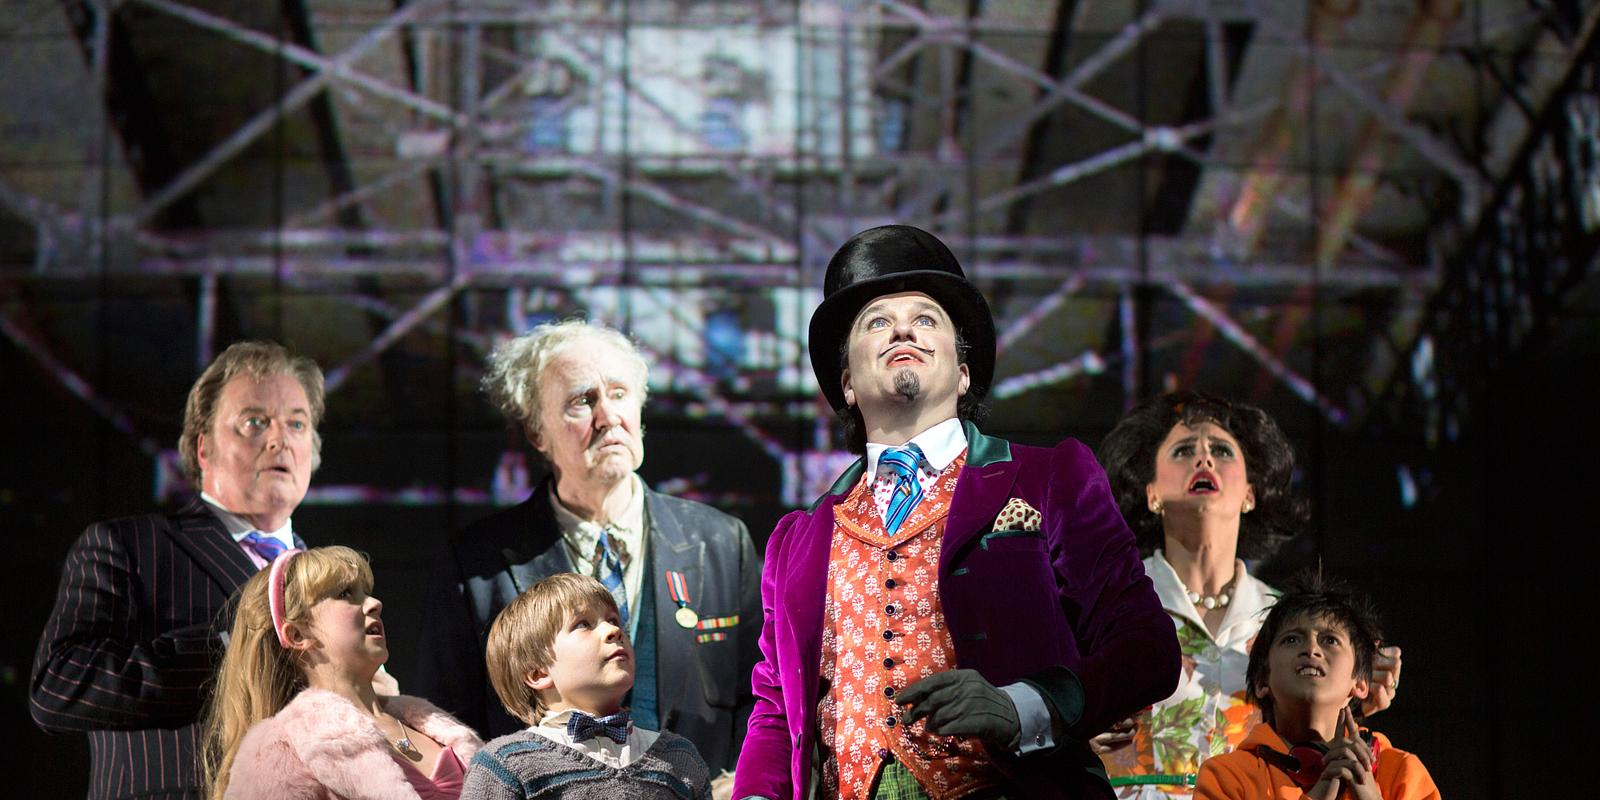 charlie and the chocolate factory behind the magic of the west  charlie and the chocolate factory behind the magic of the west end musical